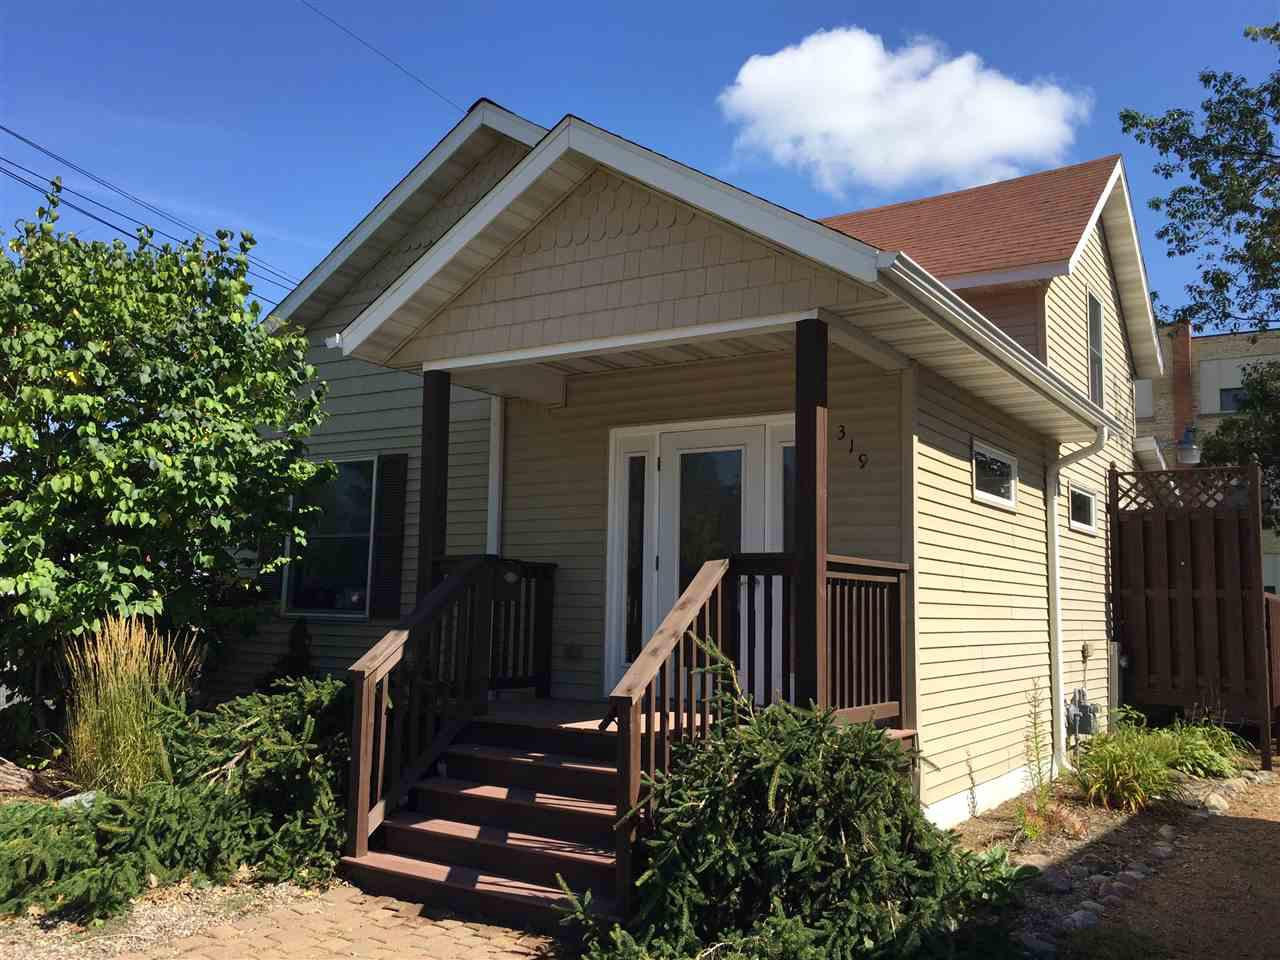 HOME OR OFFICE? This recently remodeled 4 bedroom 1 bath home was previously used as a counseling office and is currently zoned for professional office use but could easily be re zoned for residential use again. This property features two bedrooms along with a sizable living room, fully updated kitchen, and handicap accessible bathroom on the main level and one large and one smaller bedroom on the upper level. The property is handicap accessible with ramp access to the side door and has been equipped with exit signs as well. This property would be wonderful for a myriad of businesses such as assisted living, chiropractic, massage therapy, or counselling.  It also would make a wonderful home with plenty of room to add a  garage in back. A great opportunity whether as a home or an office so call today.